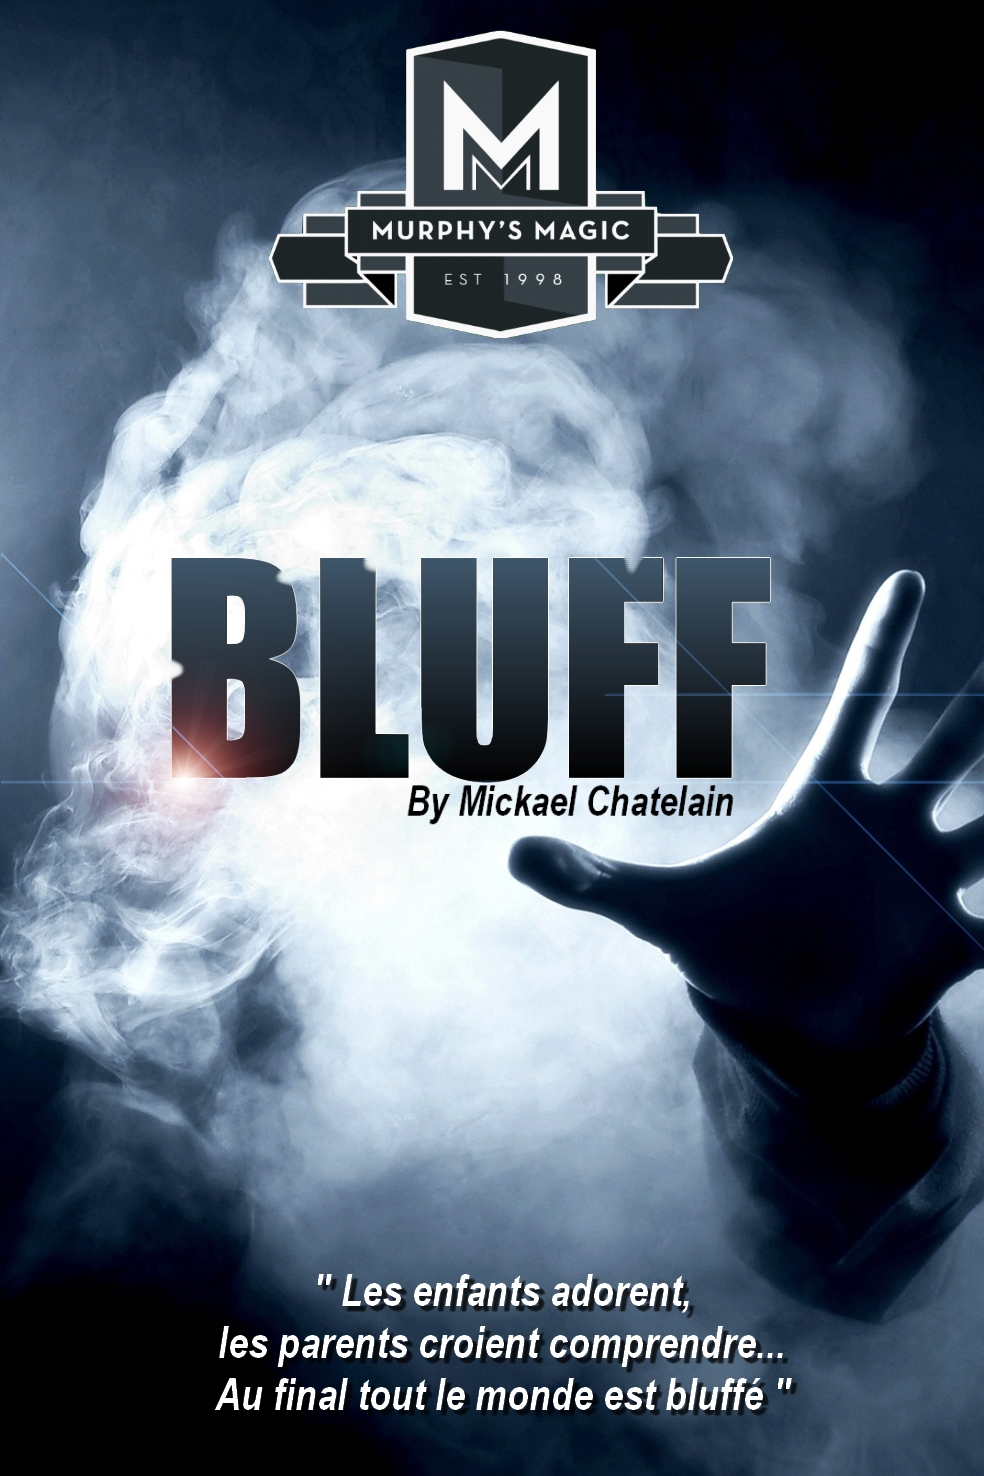 Bluff by Mickael Chatelain